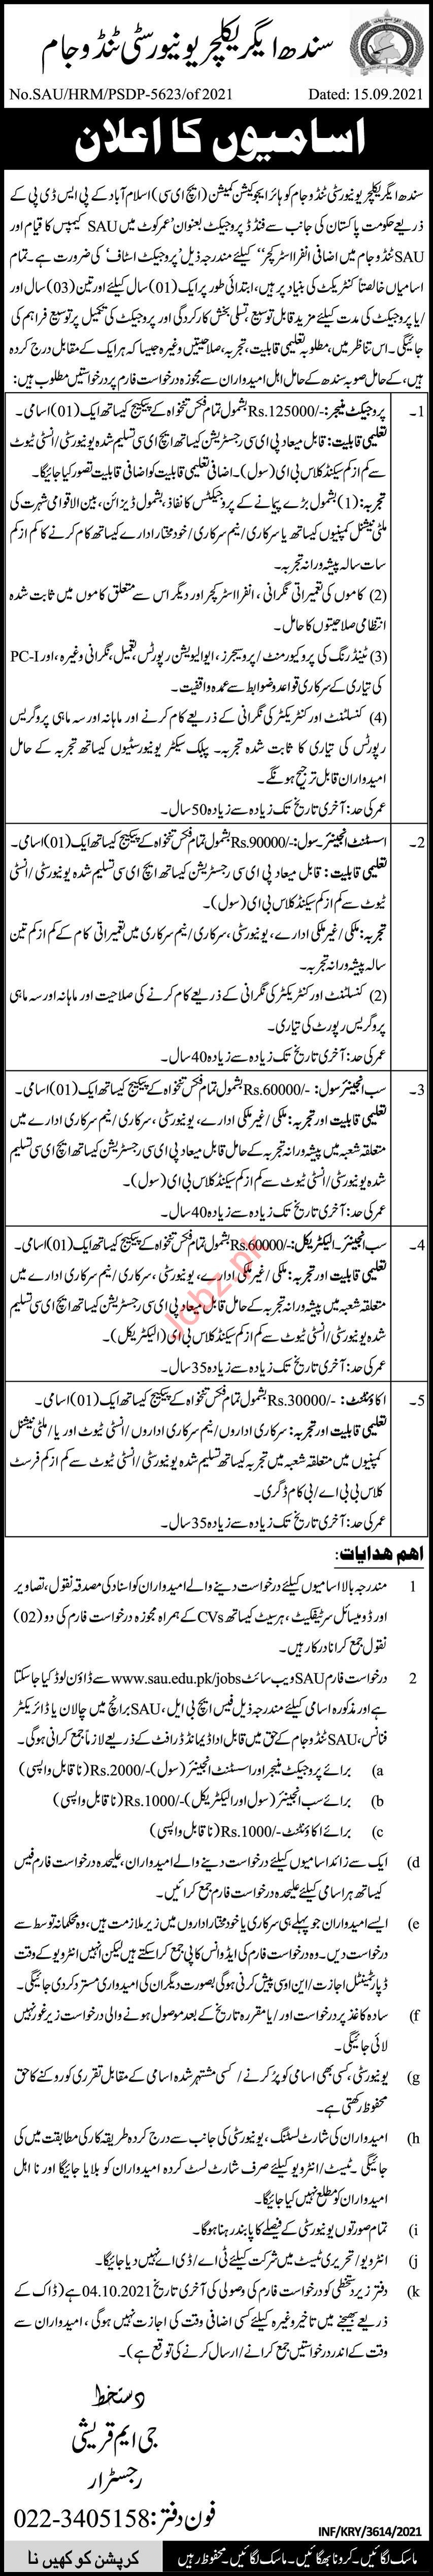 Sindh Agriculture University Jobs 2021